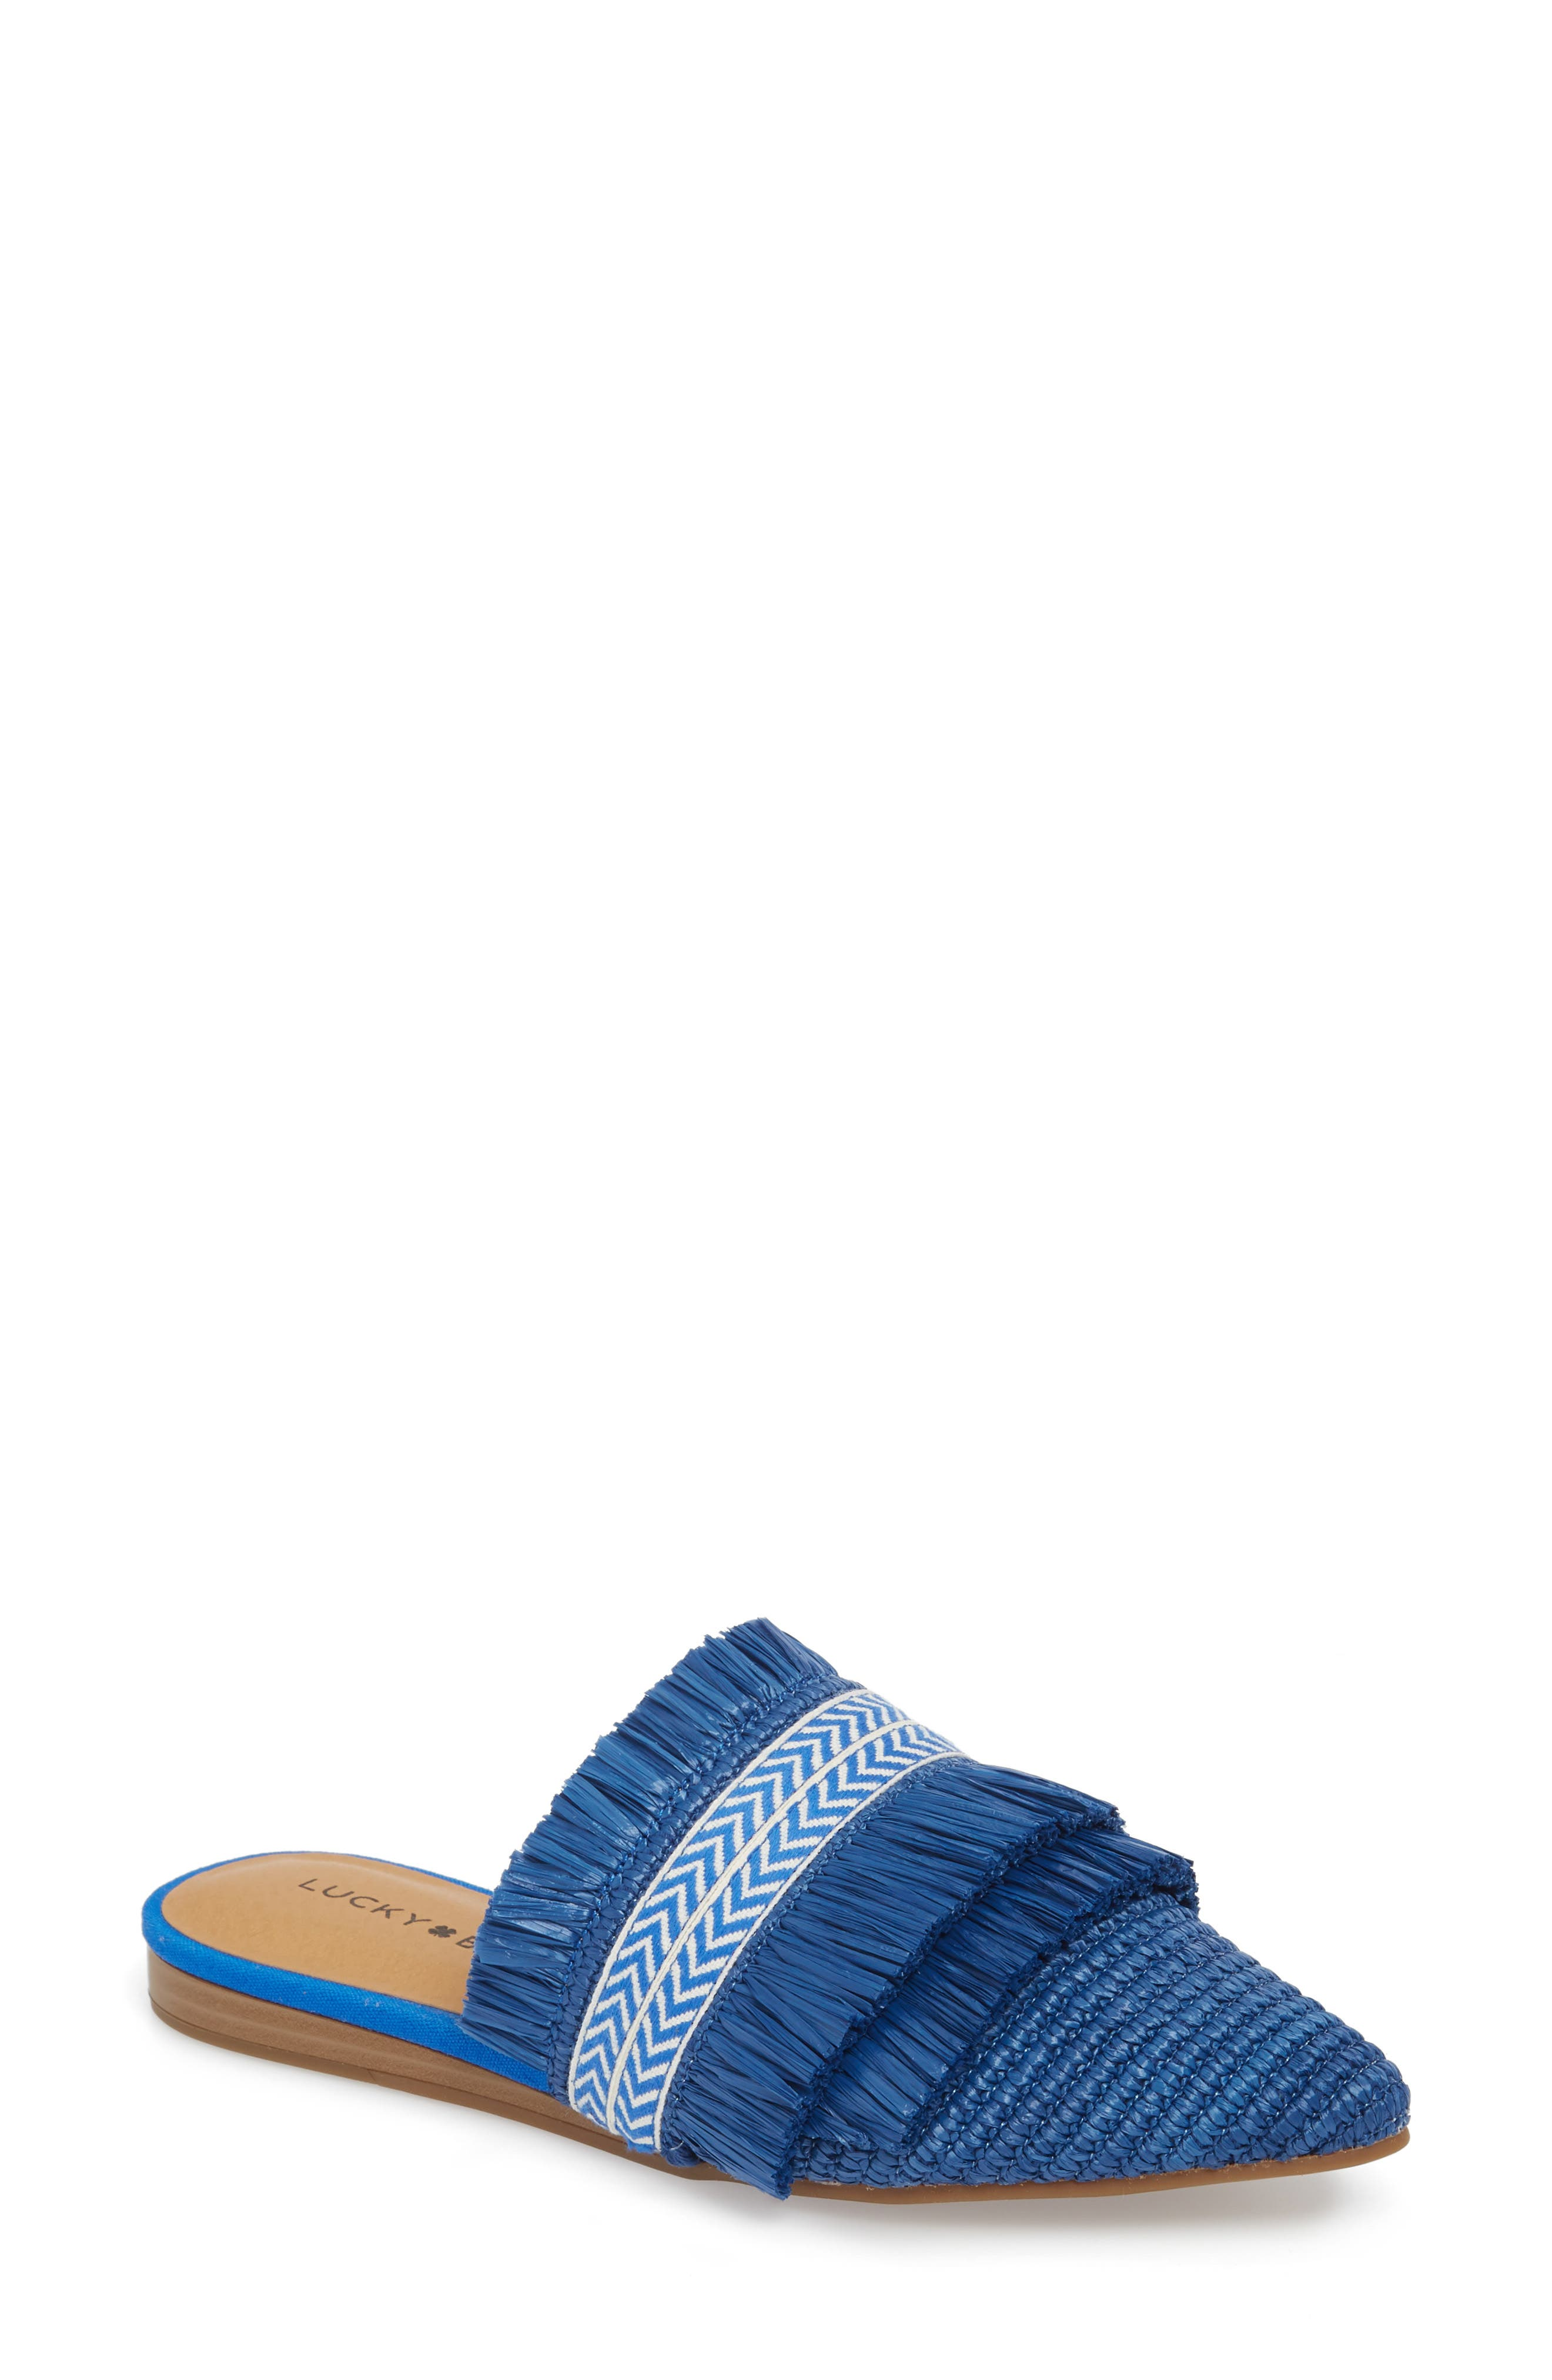 LUCKY BRAND Baoss Mule in Lapis Leather